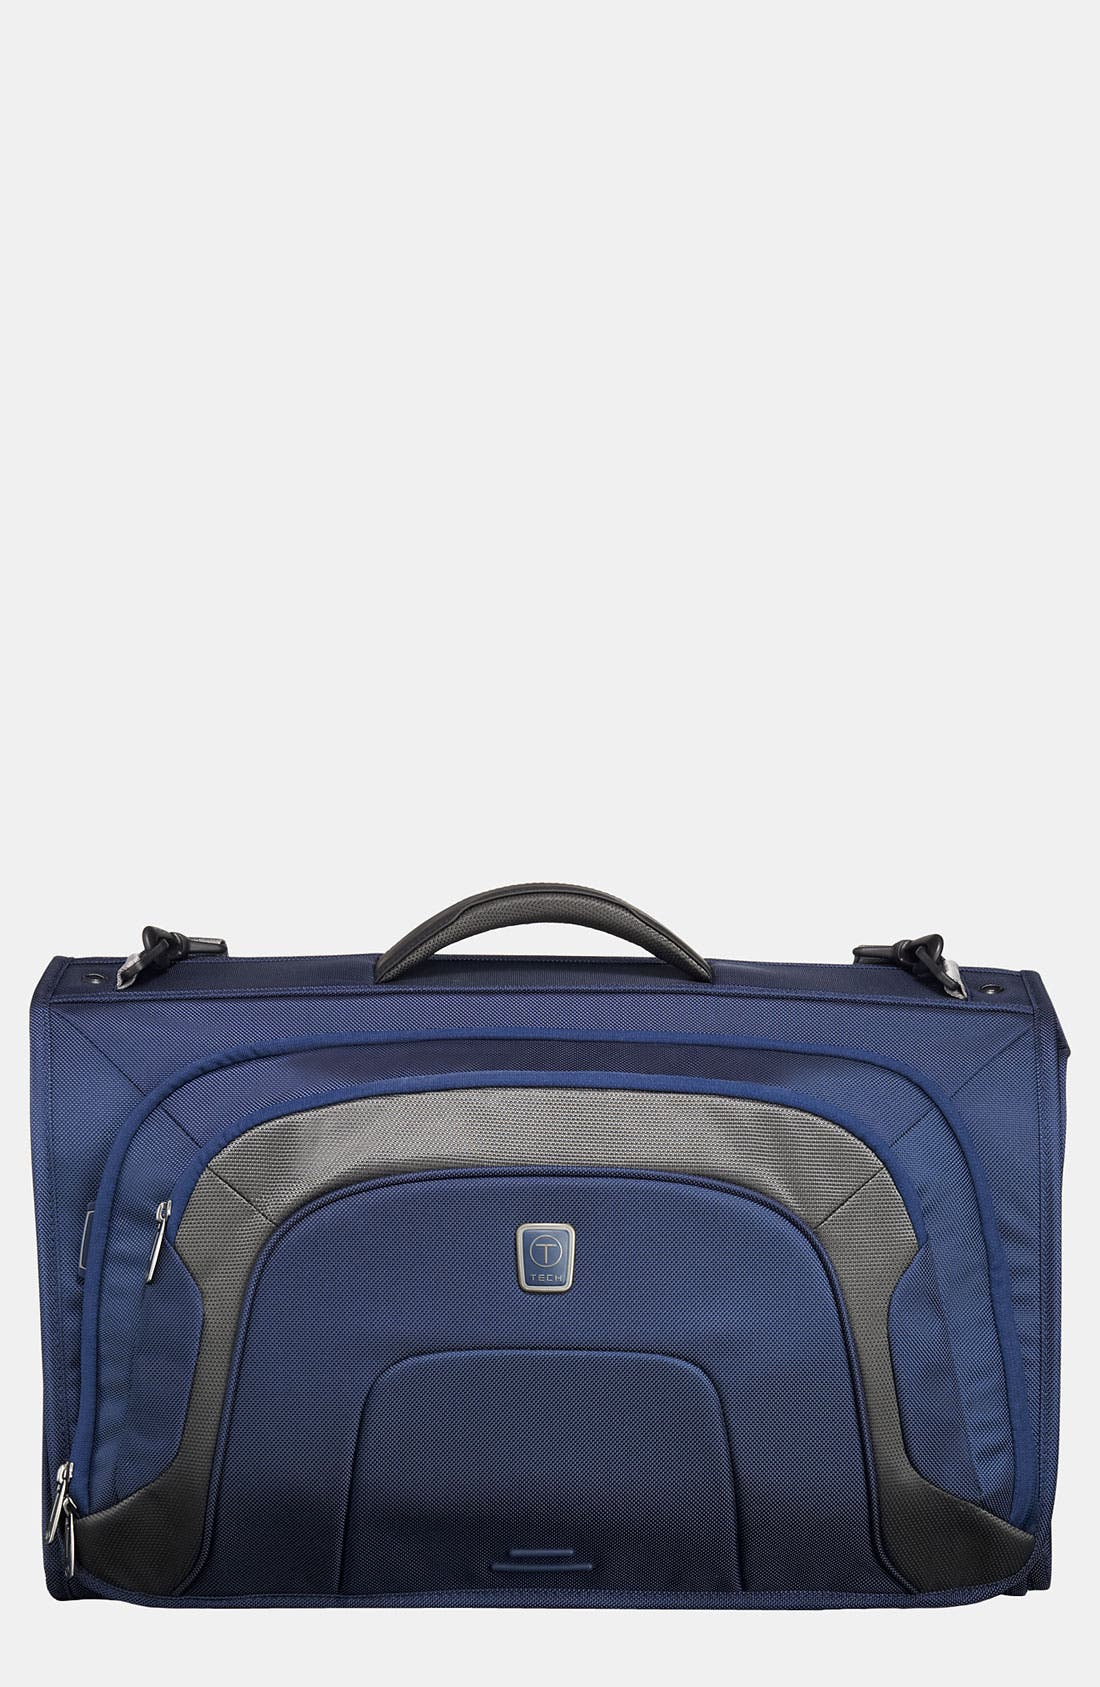 Alternate Image 1 Selected - T-Tech by Tumi 'Presidio Kobbe' Trifold Garment Bag